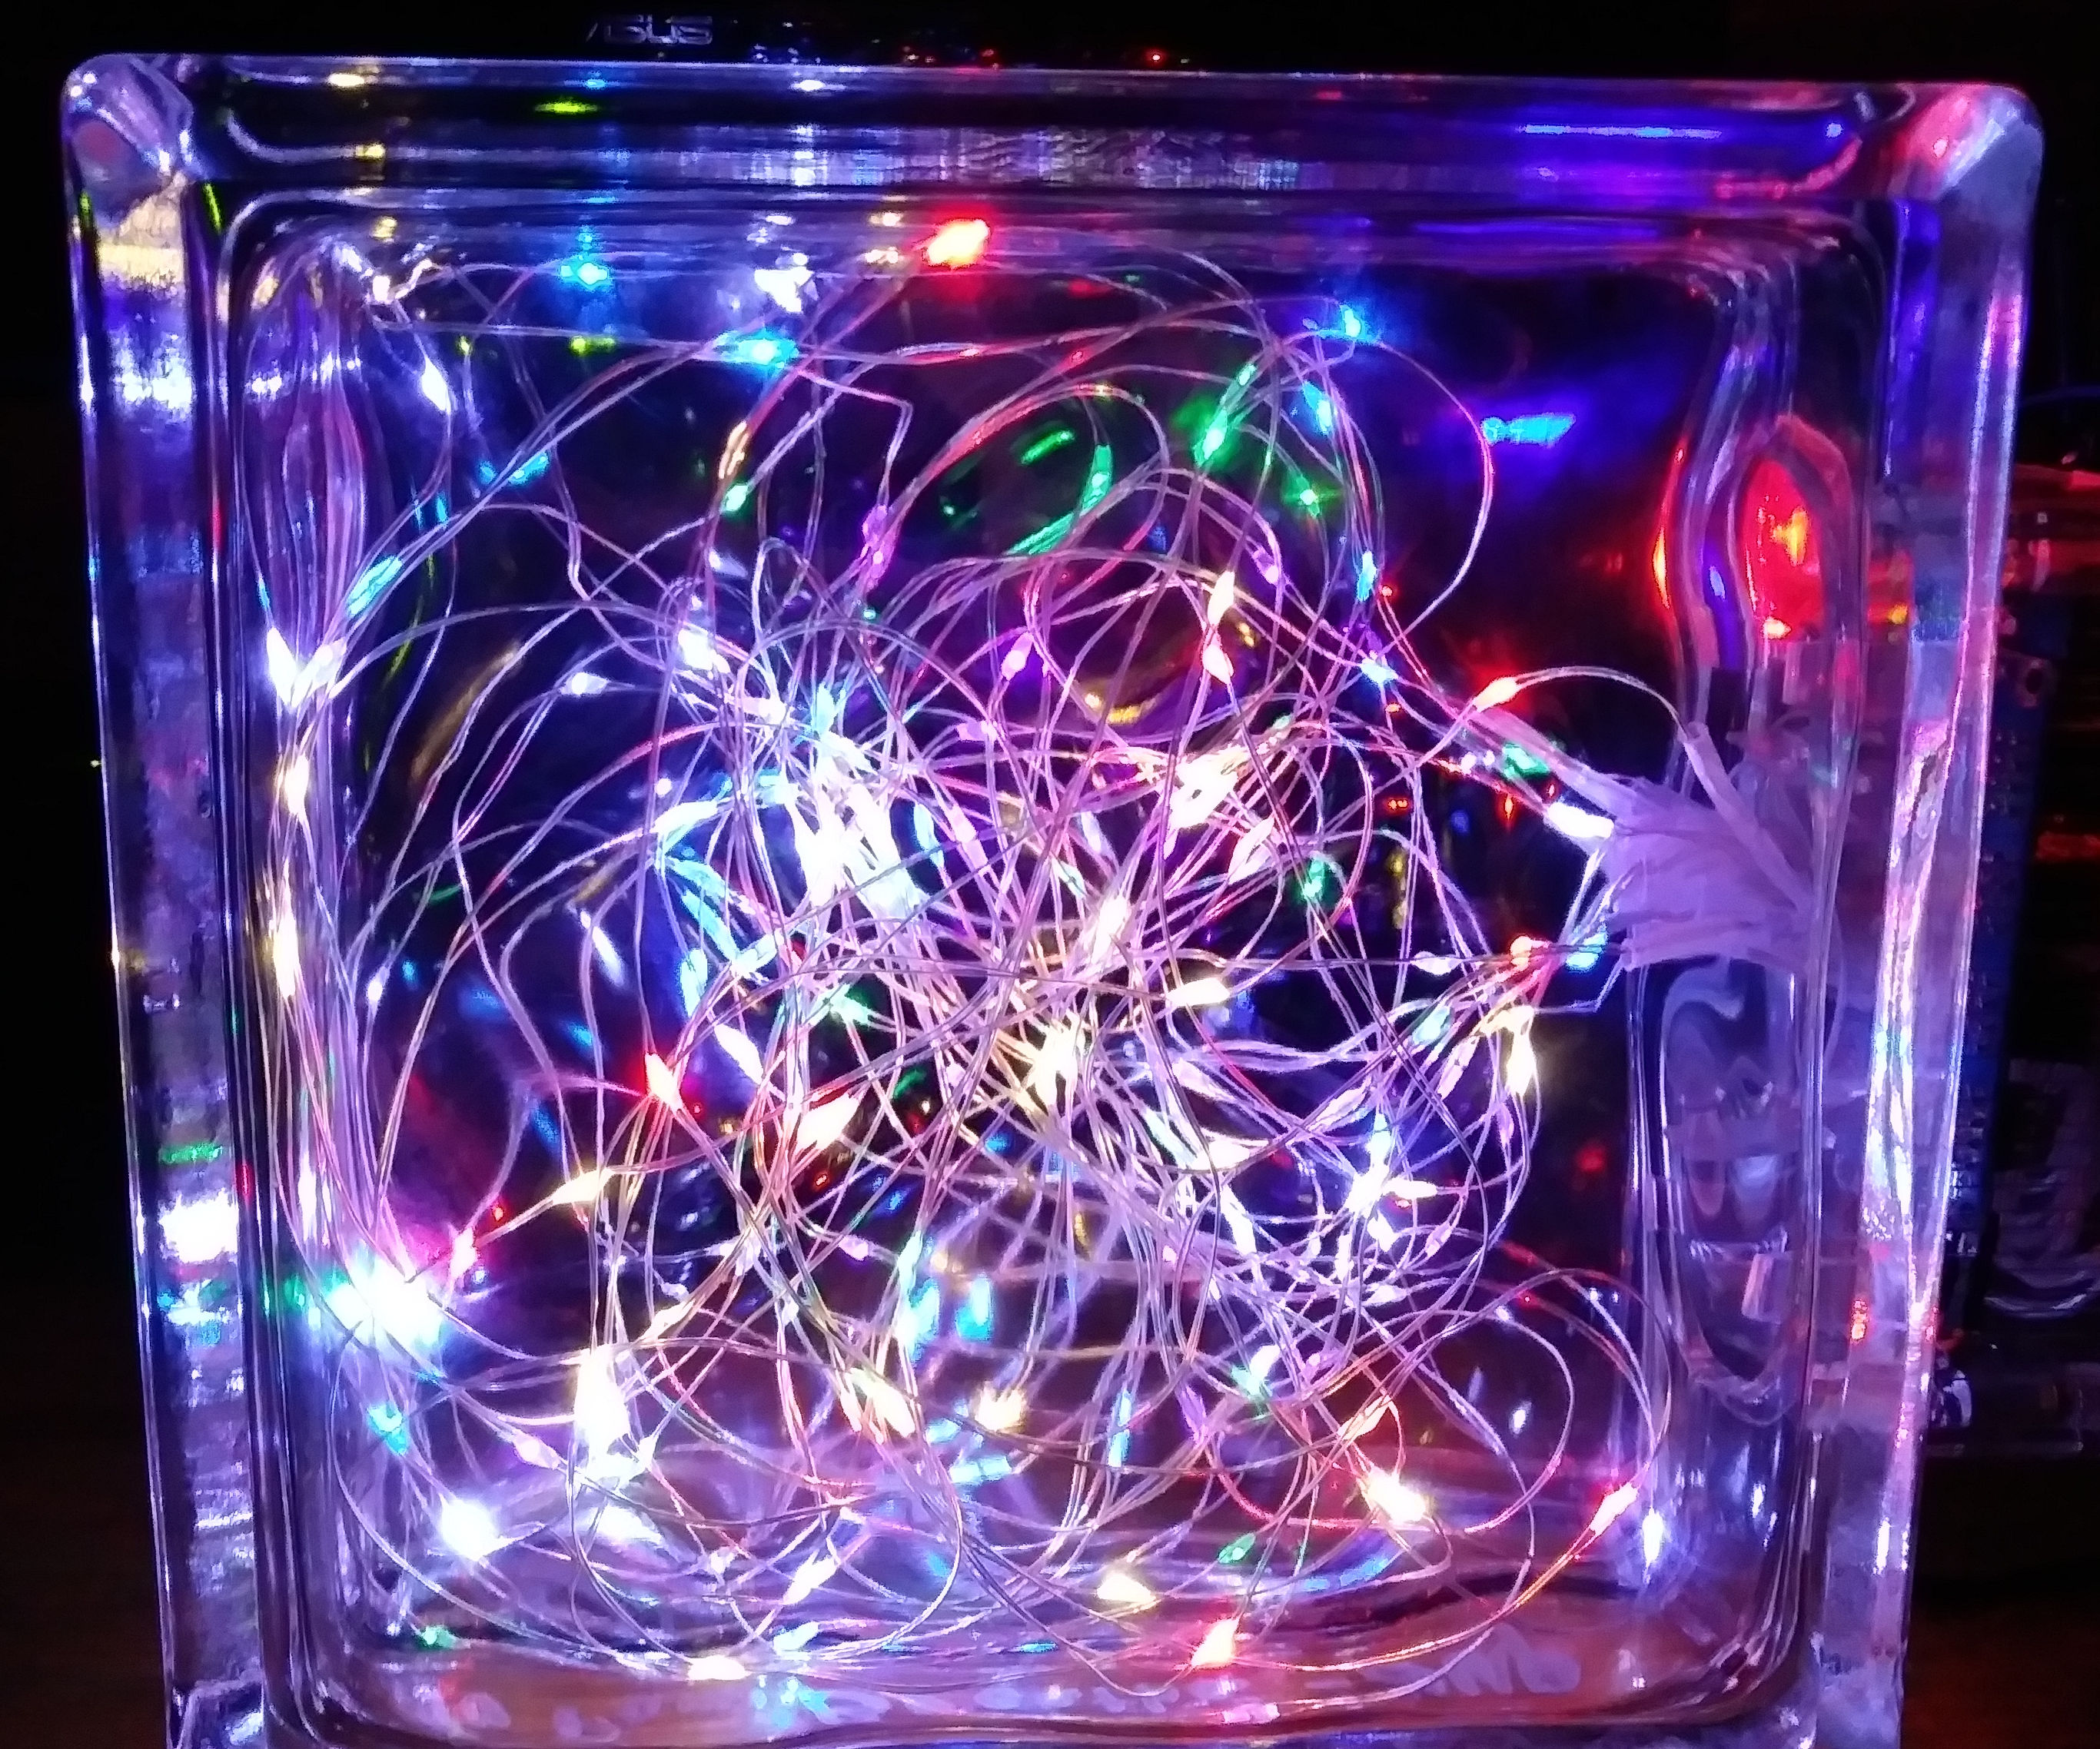 Breathe: Glowing LED Strands in a Glass Block